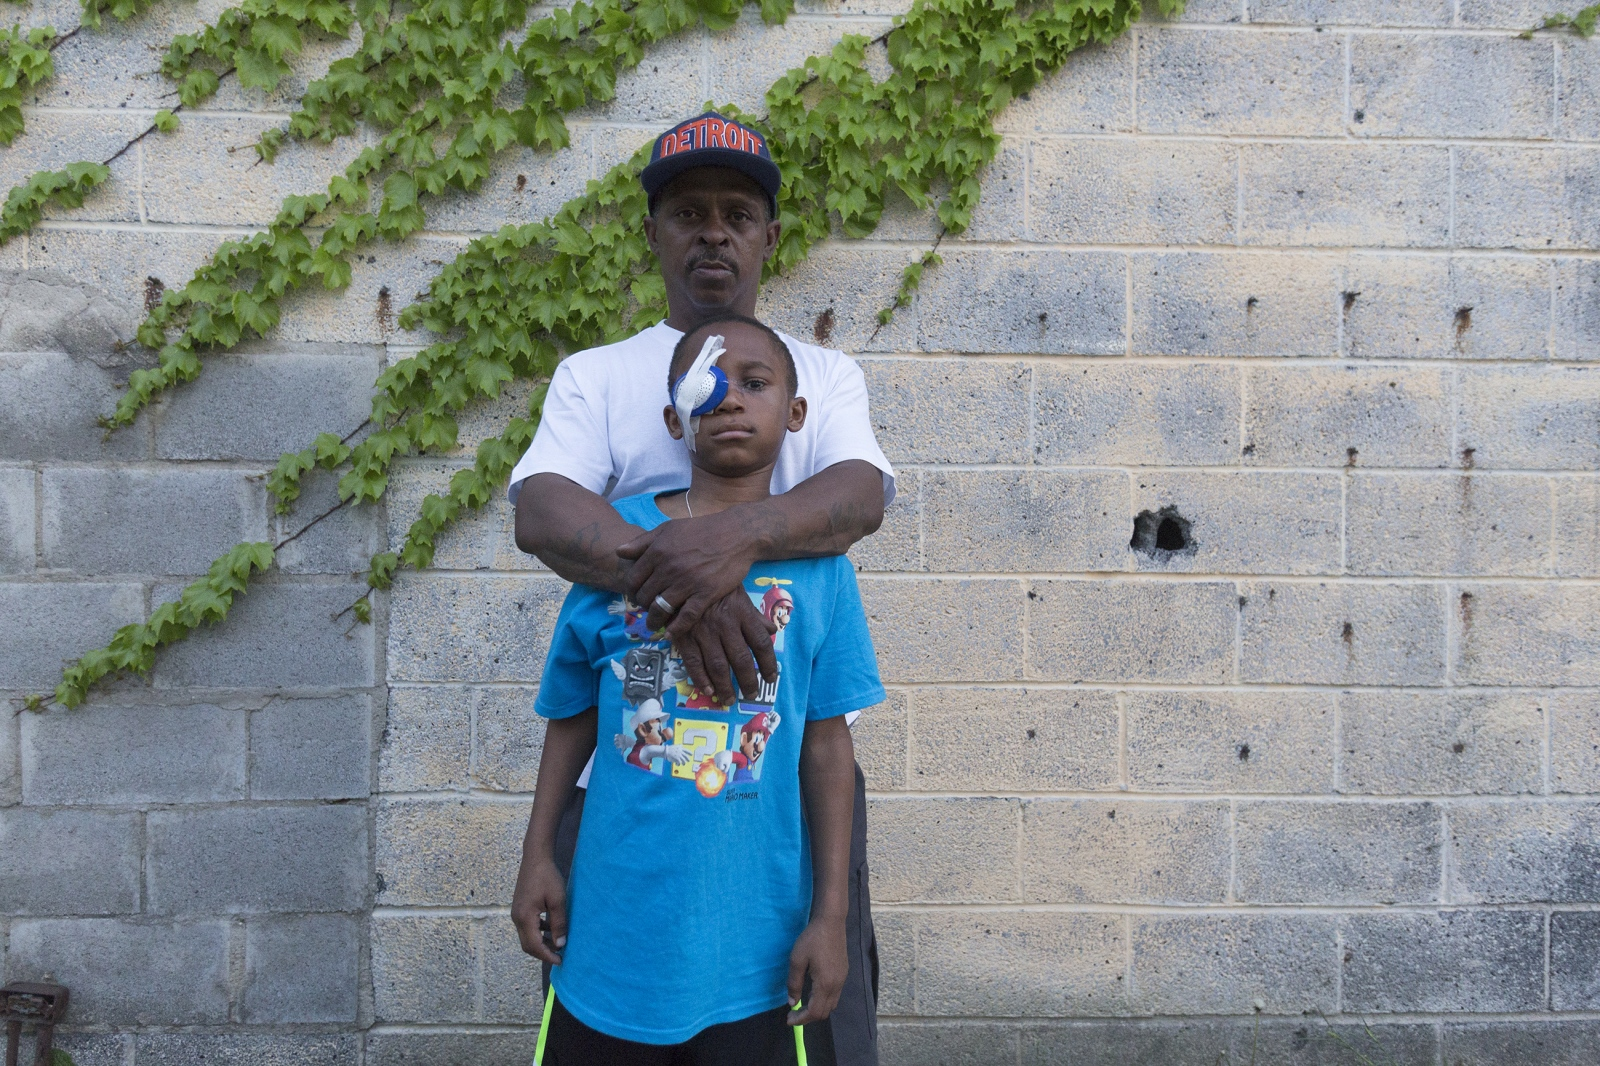 Cecil Cosey holds his son Malik Cosey, 9, on Wednesday, May 17, 2017, in Detroit. Malik was shot in the head while waiting in the car to go see the movie Boss Baby with his family in early April.